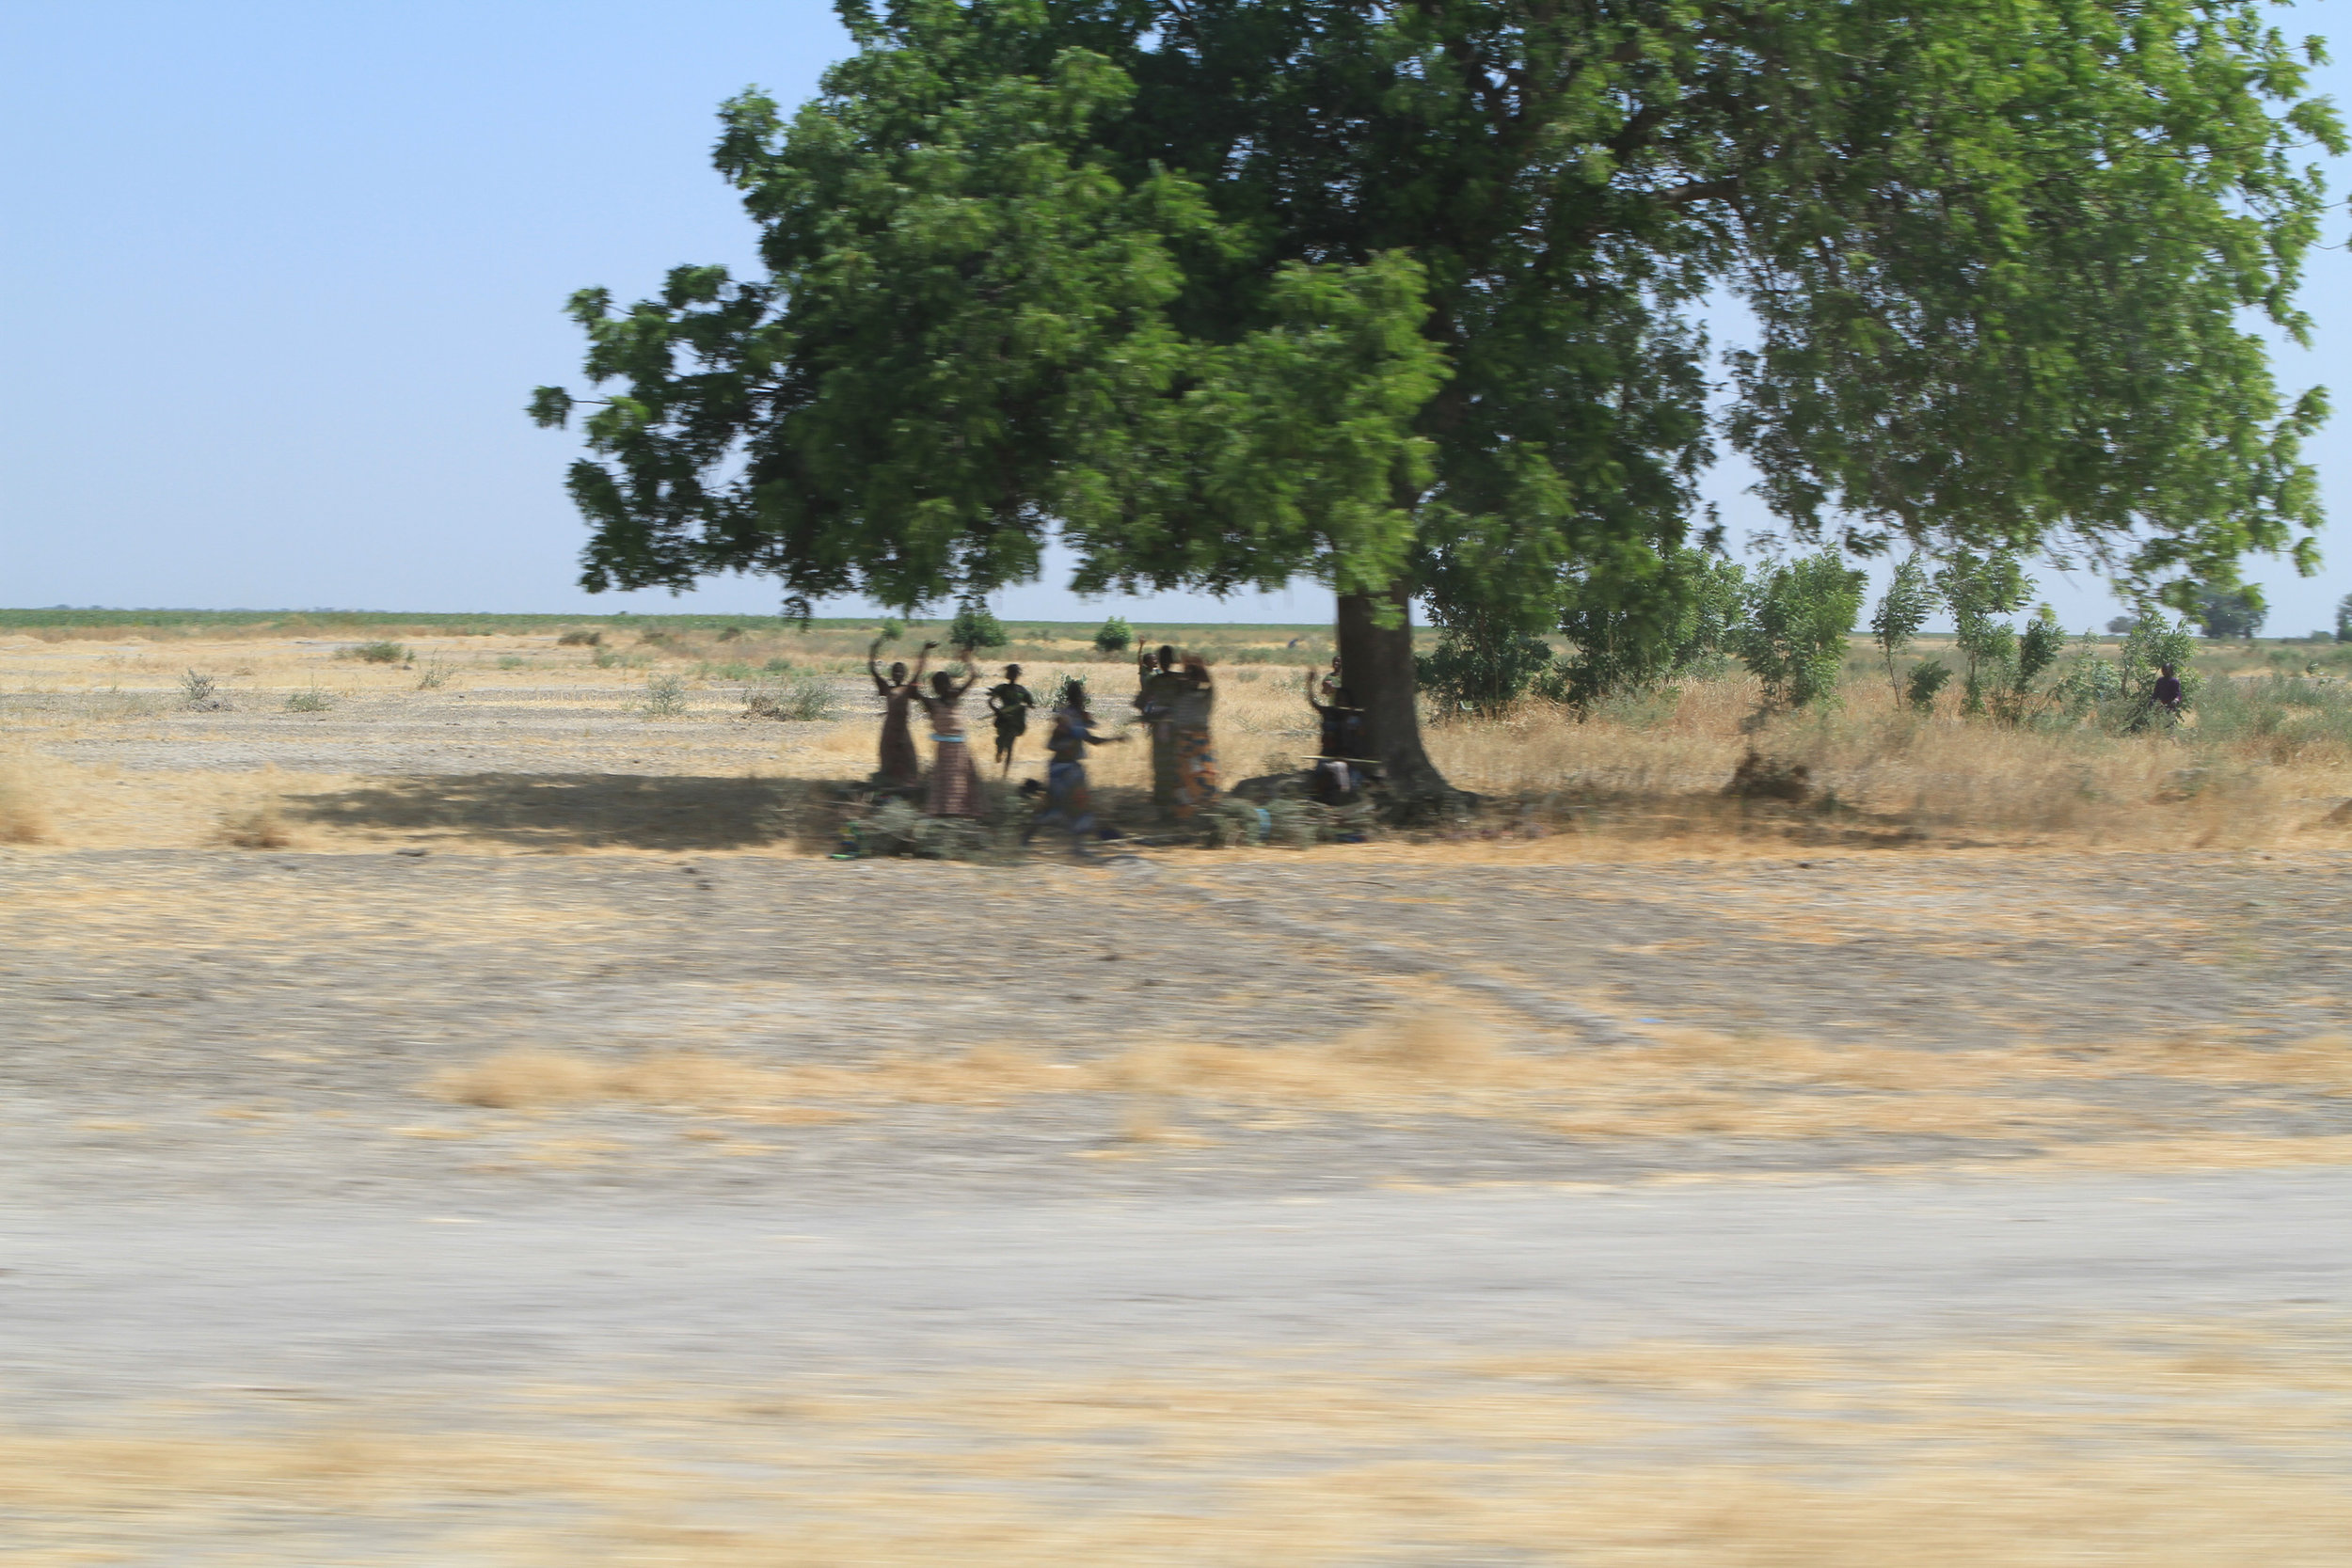 We were driving up to a village on Lake Chad. There was a big convoy of us and people ran out to wave as we went by.